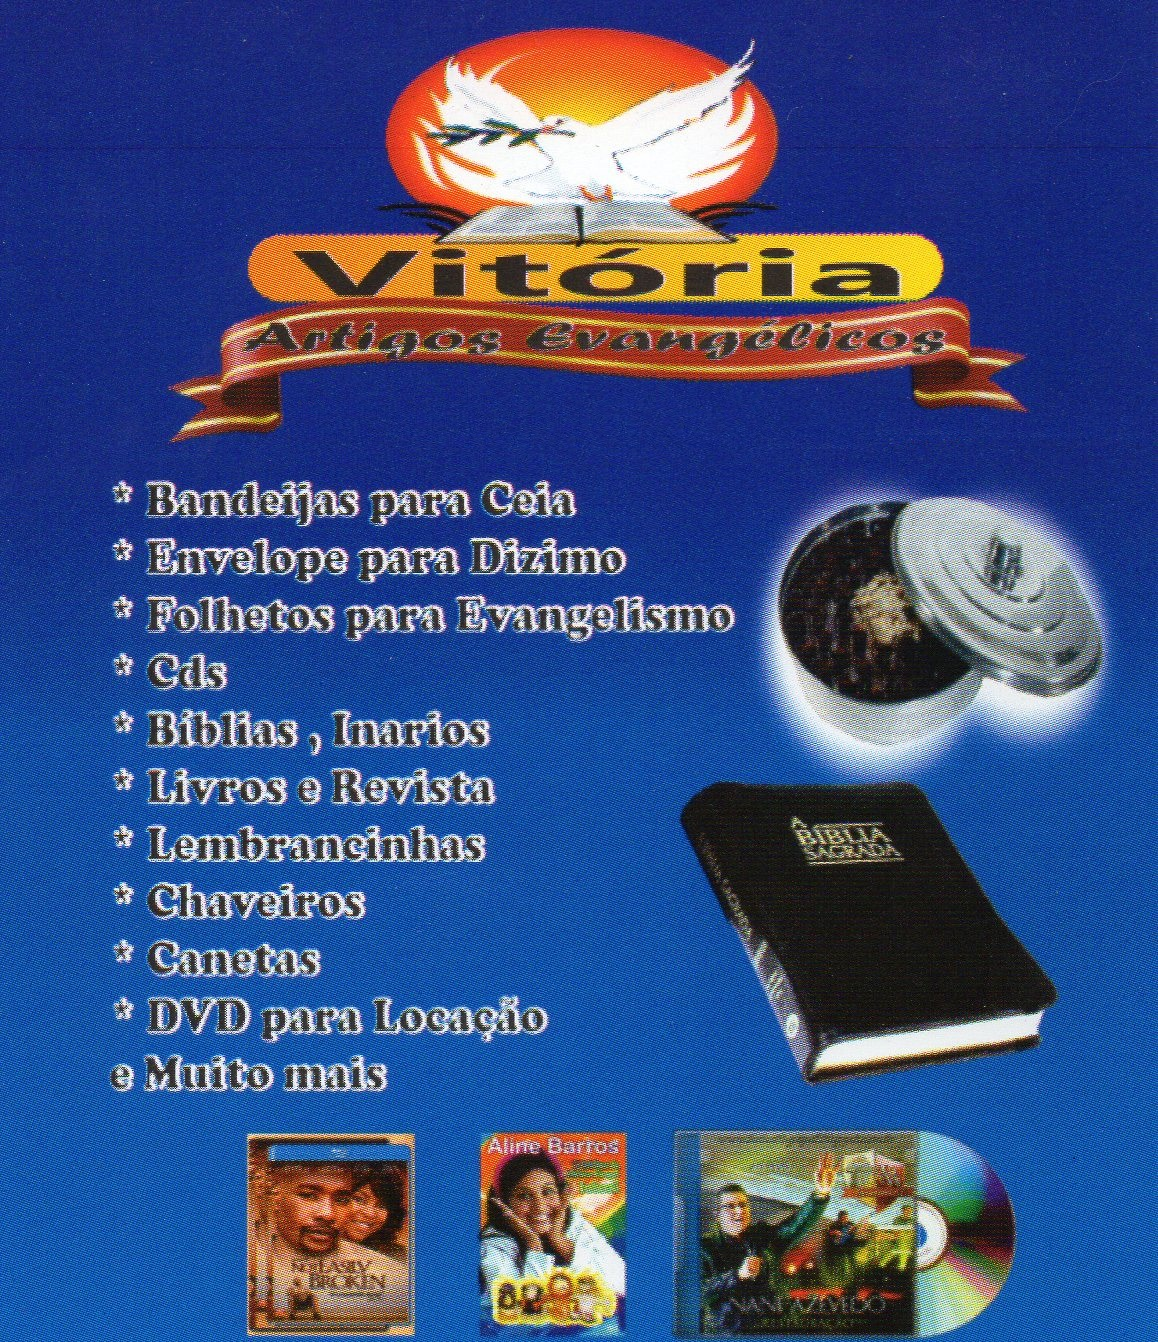 folder vitoria artigos